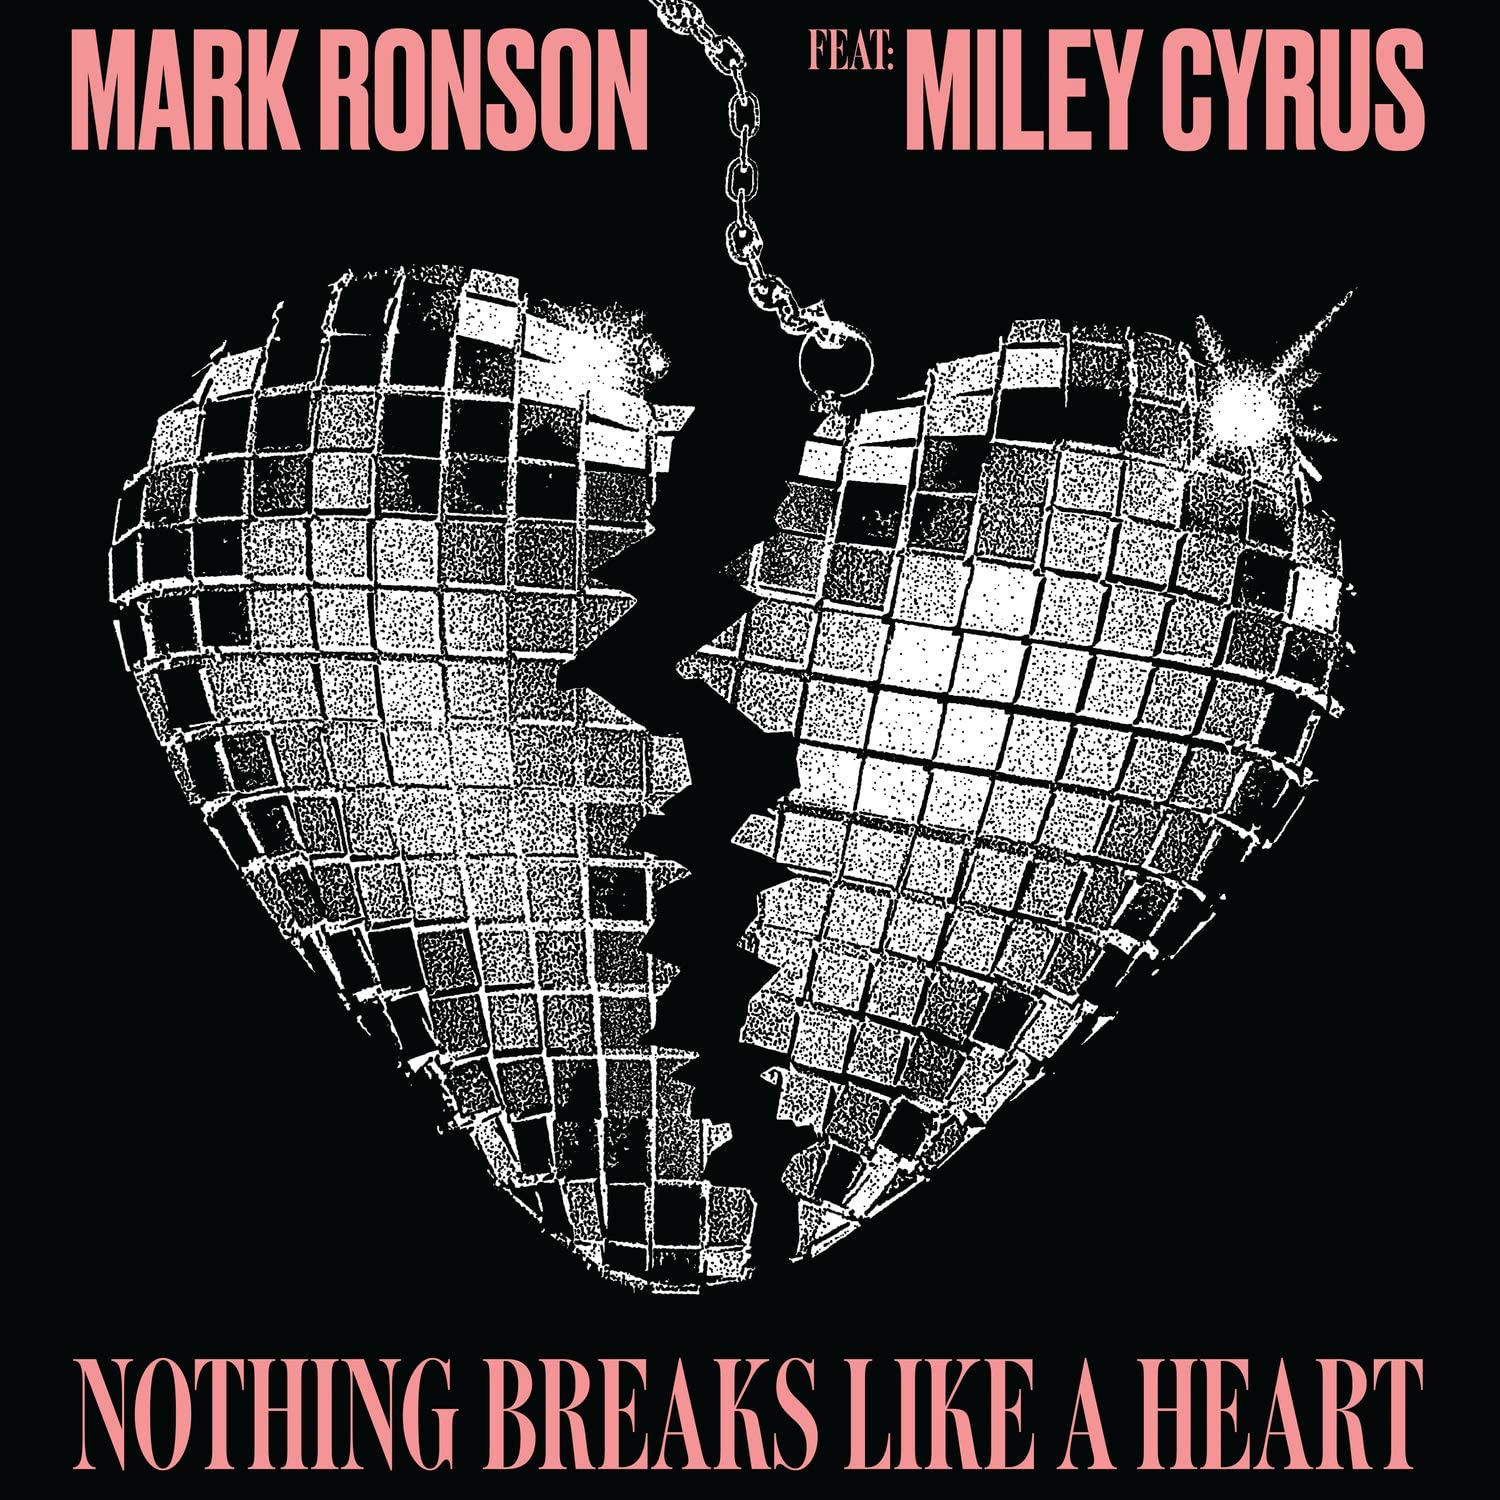 NOTHING BREAKS LIKE A HEART (Vinyl)